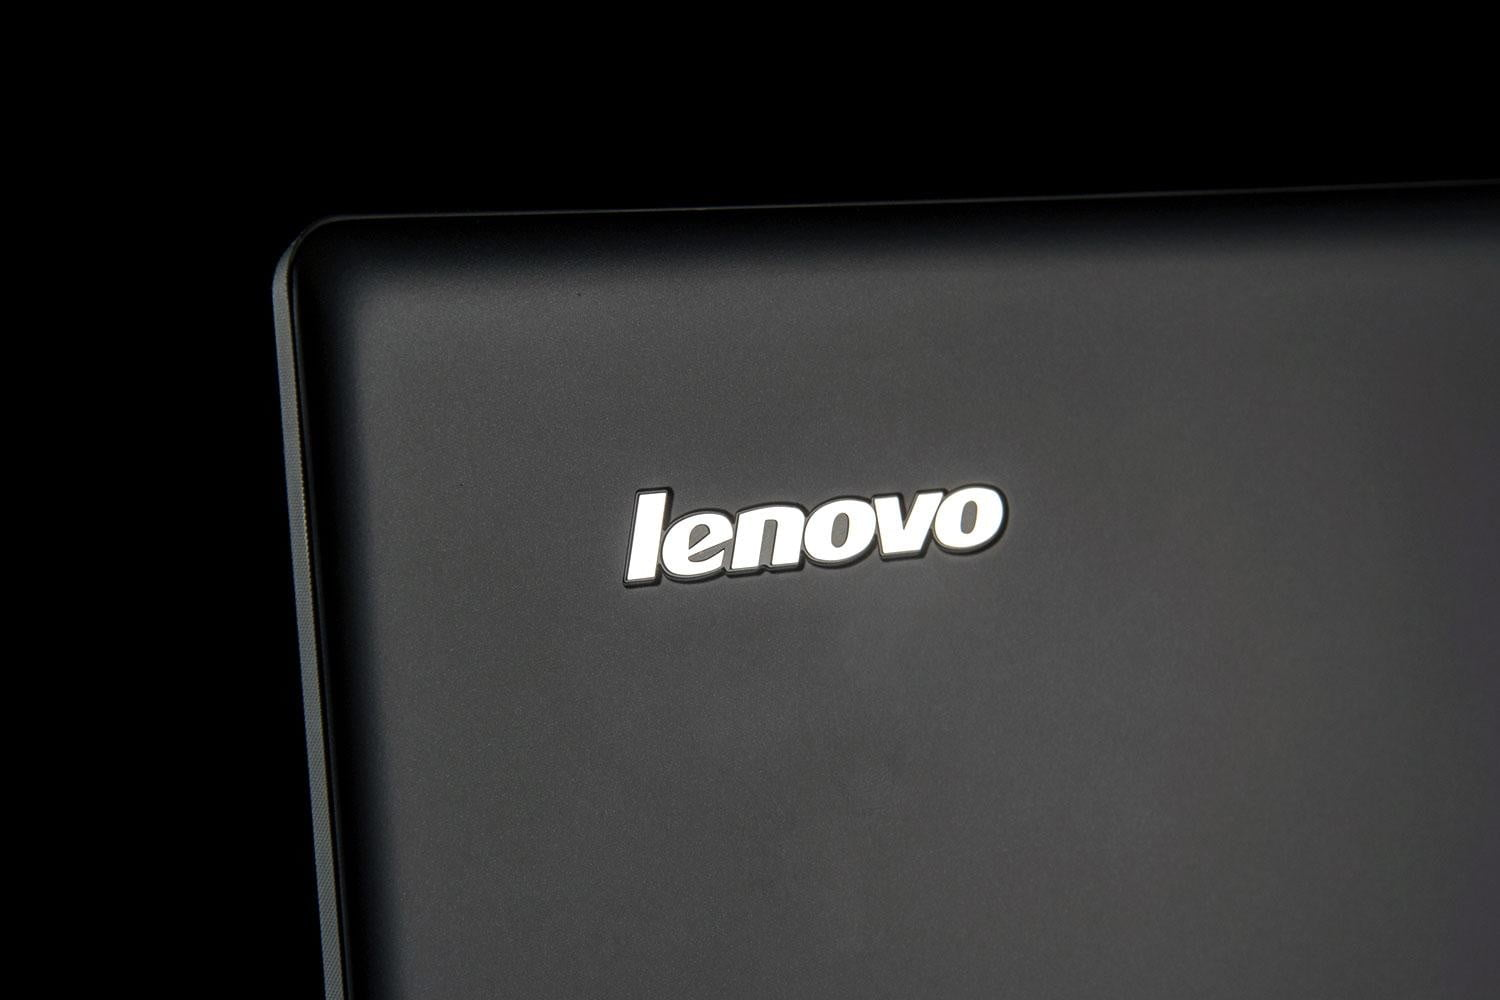 Lenovo patent hints at a future laptop with a flexible, folding OLED display